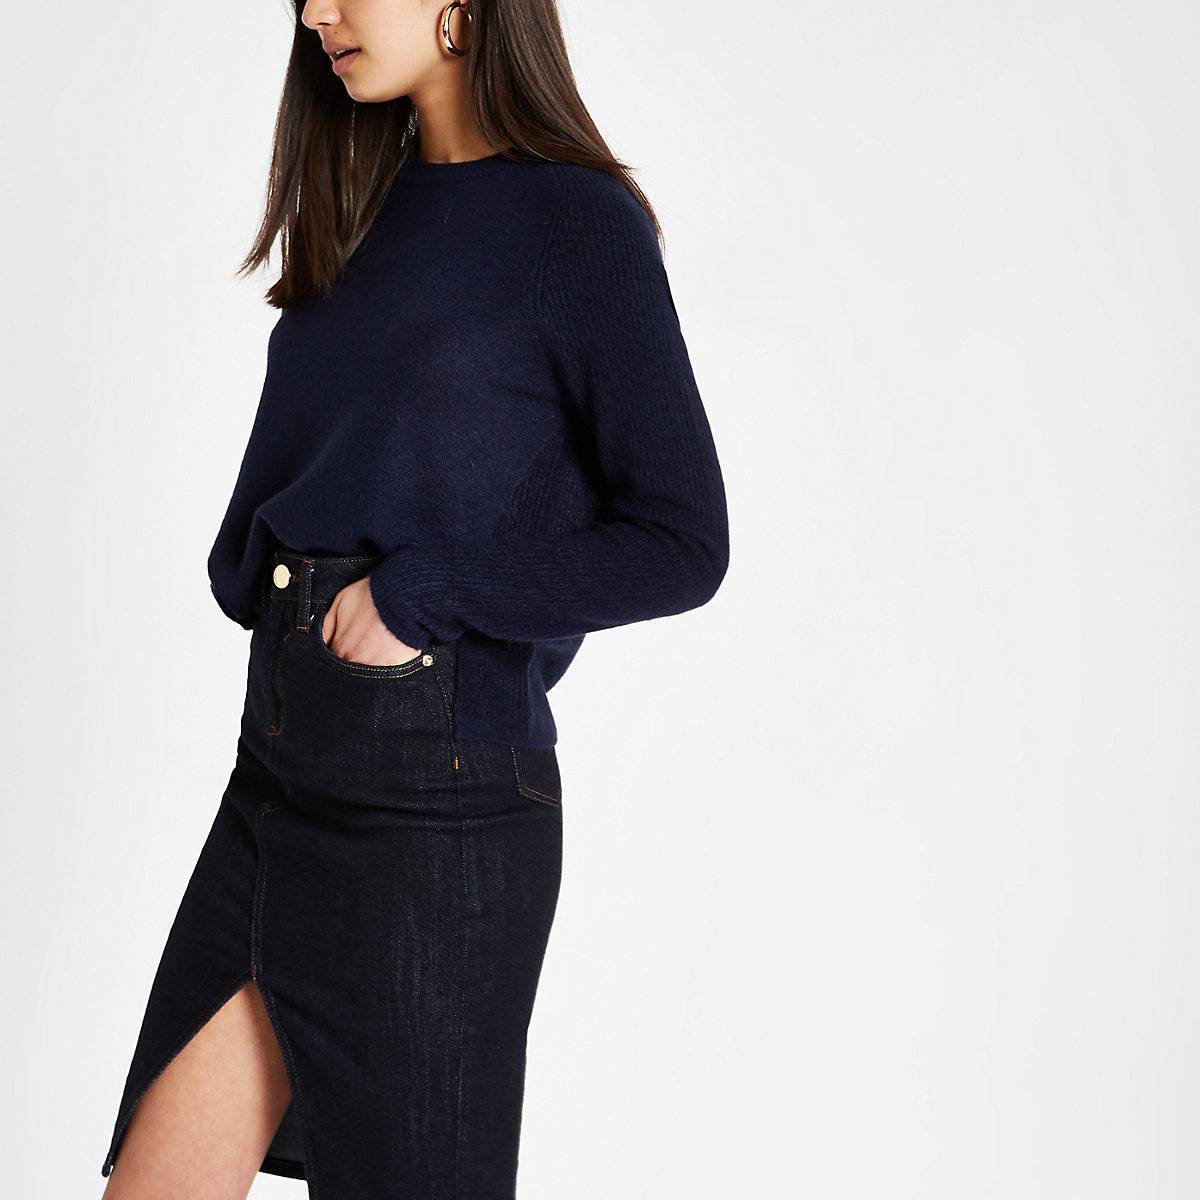 Navy knitted long sleeve crop sweater